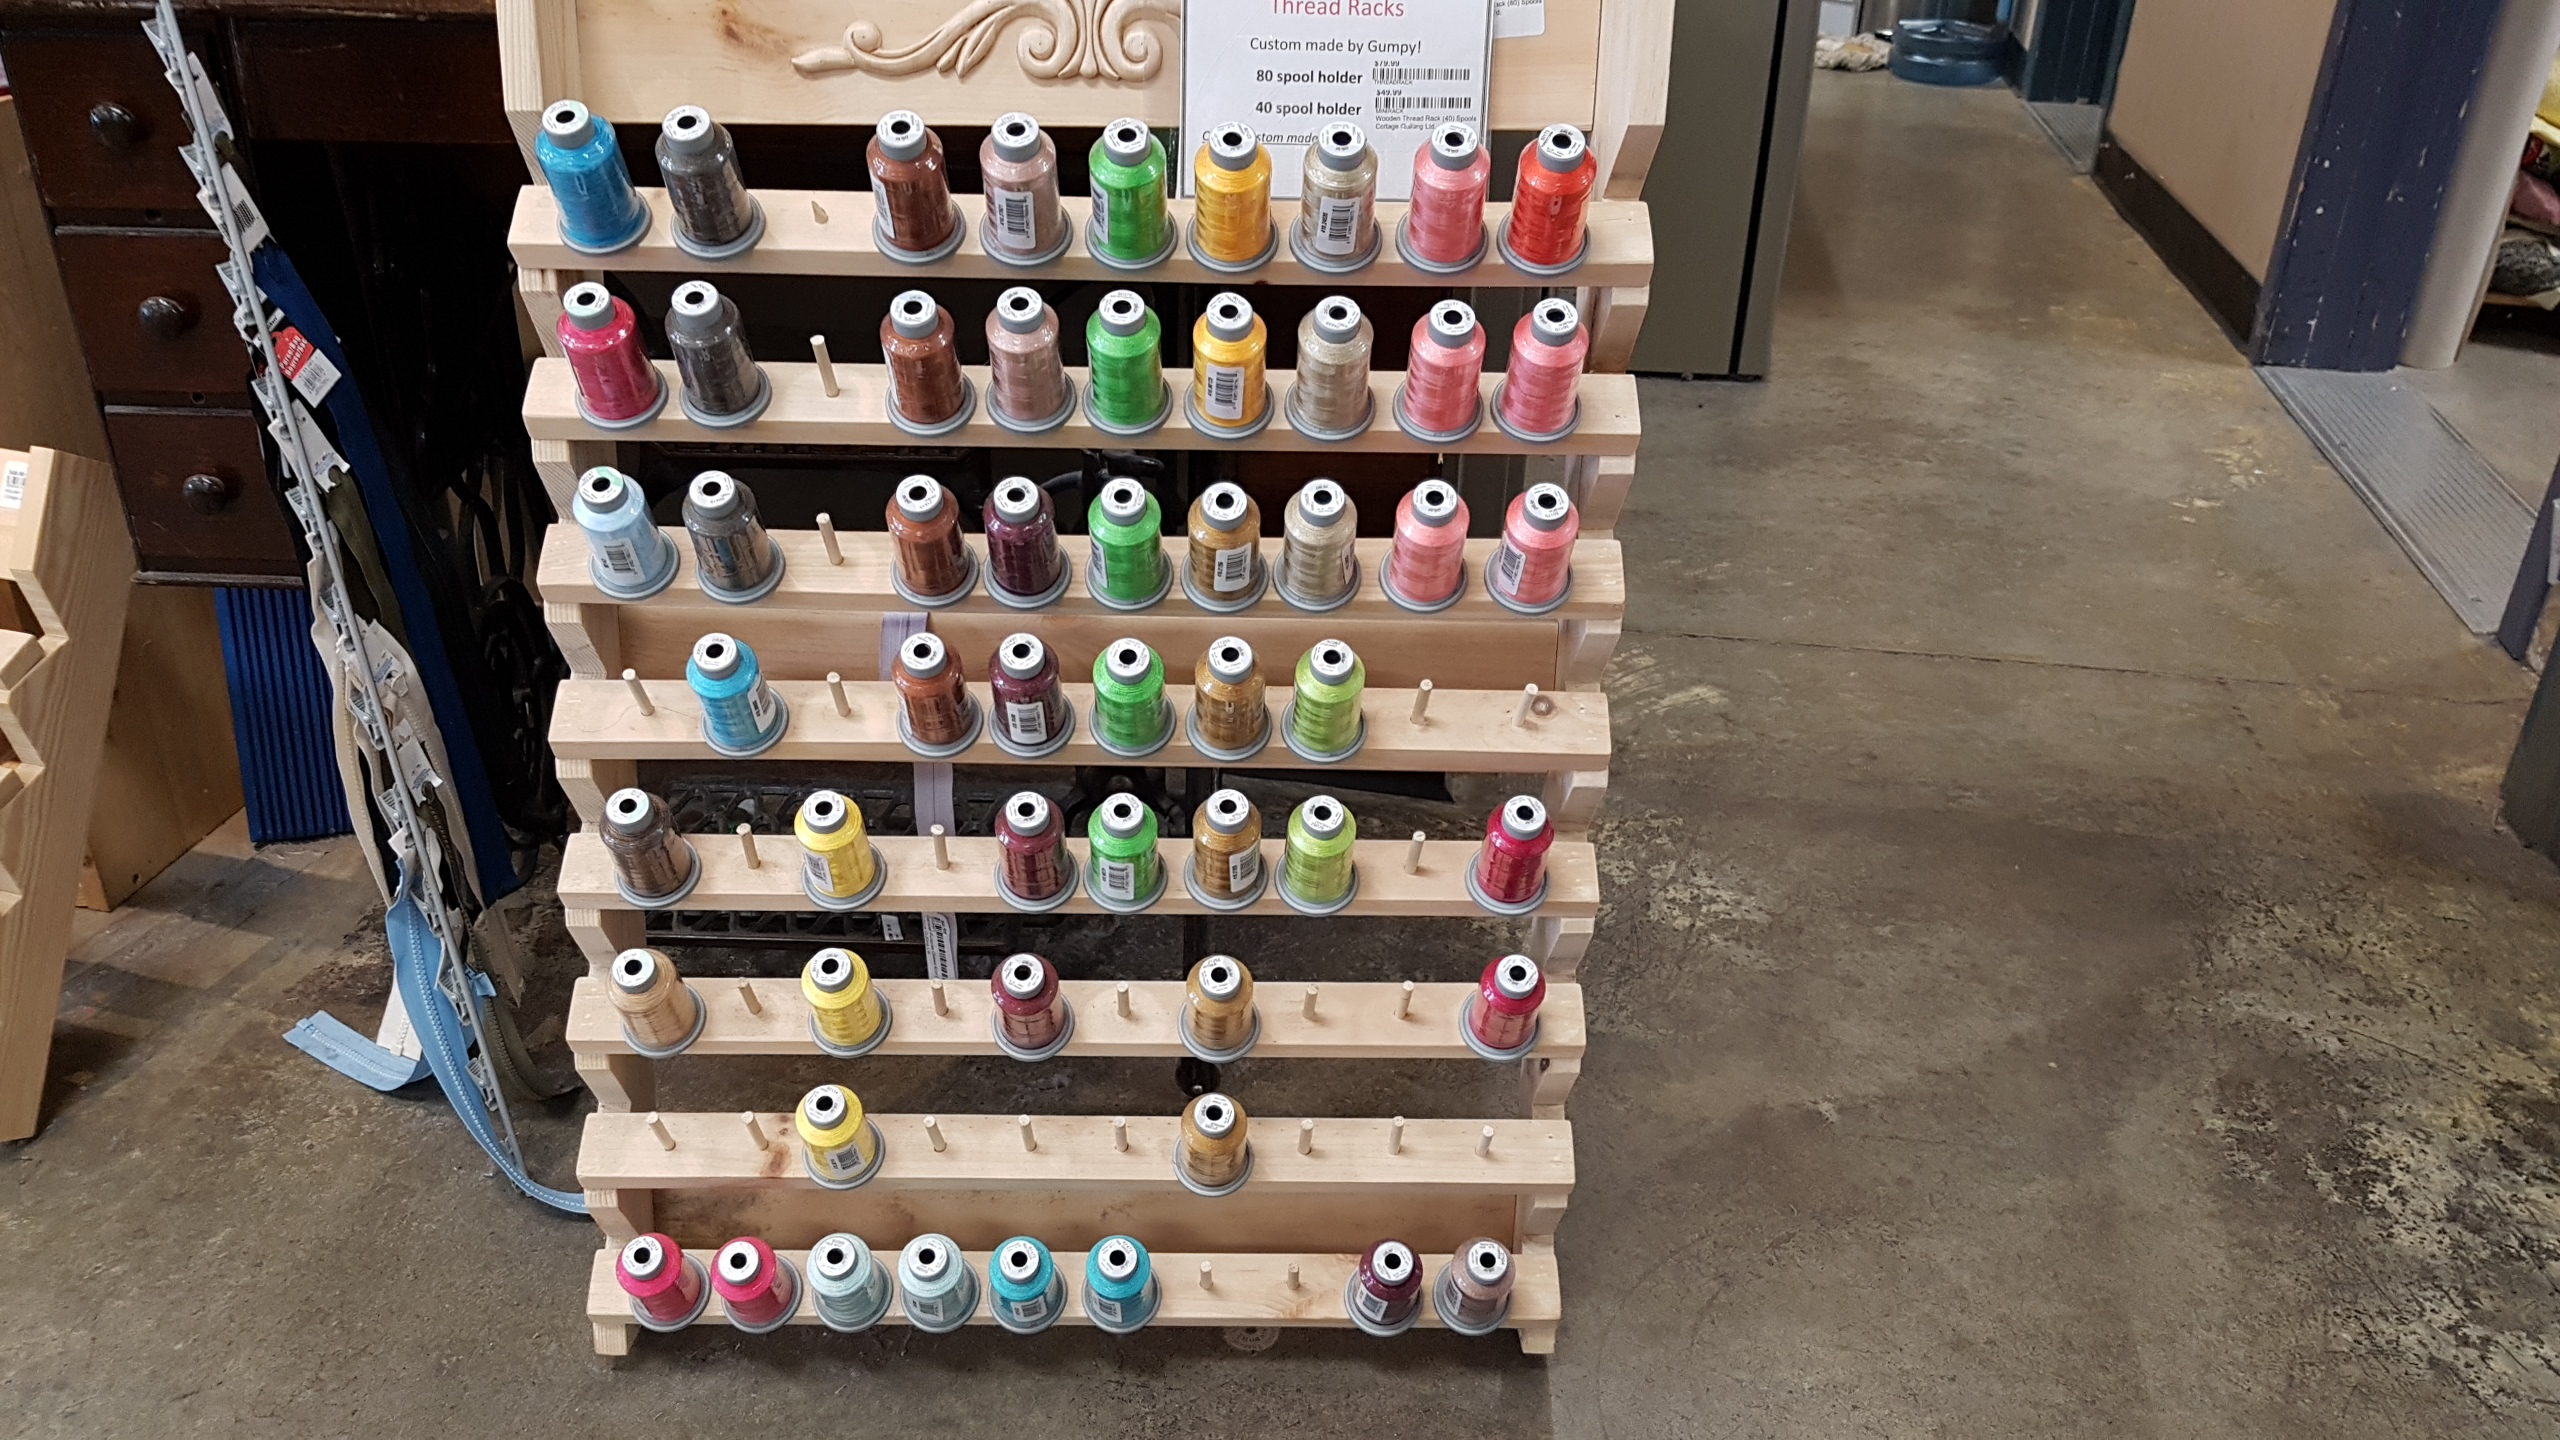 Wooden Thread Rack (80) Spools